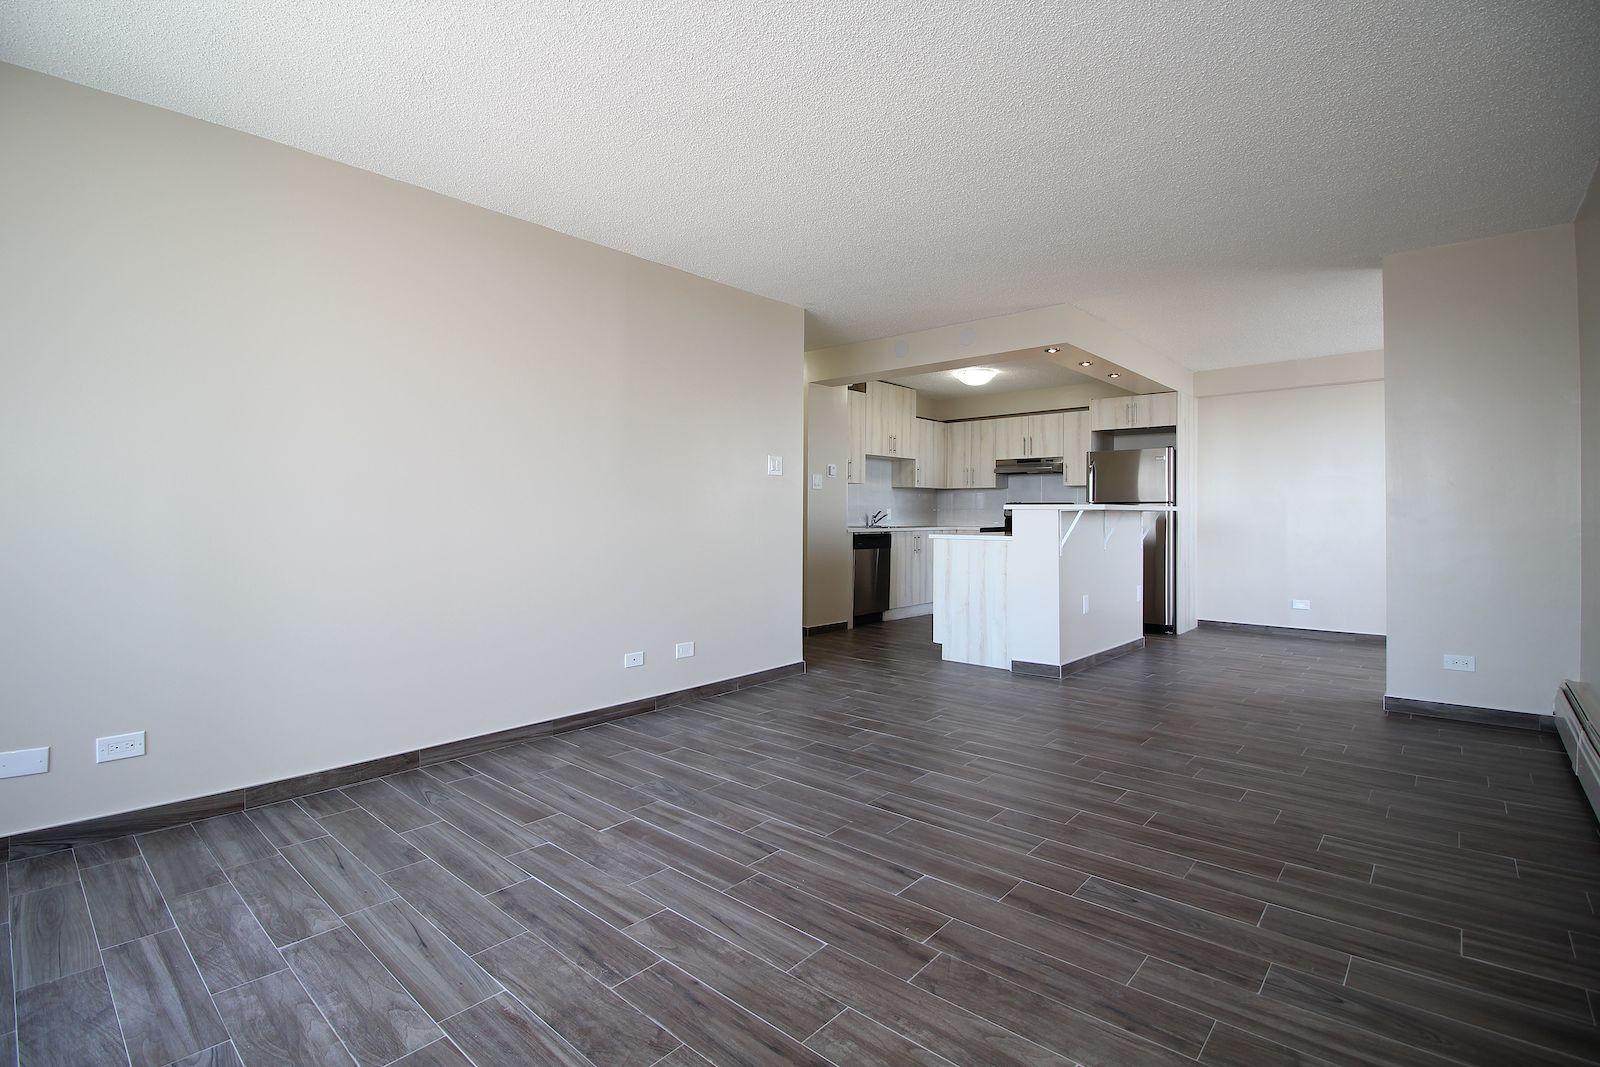 alberta hardwood flooring reviews of calgary apartment for rent downtown heart of downtown this clean inside completely renovated 2 bedroom stunning apartment